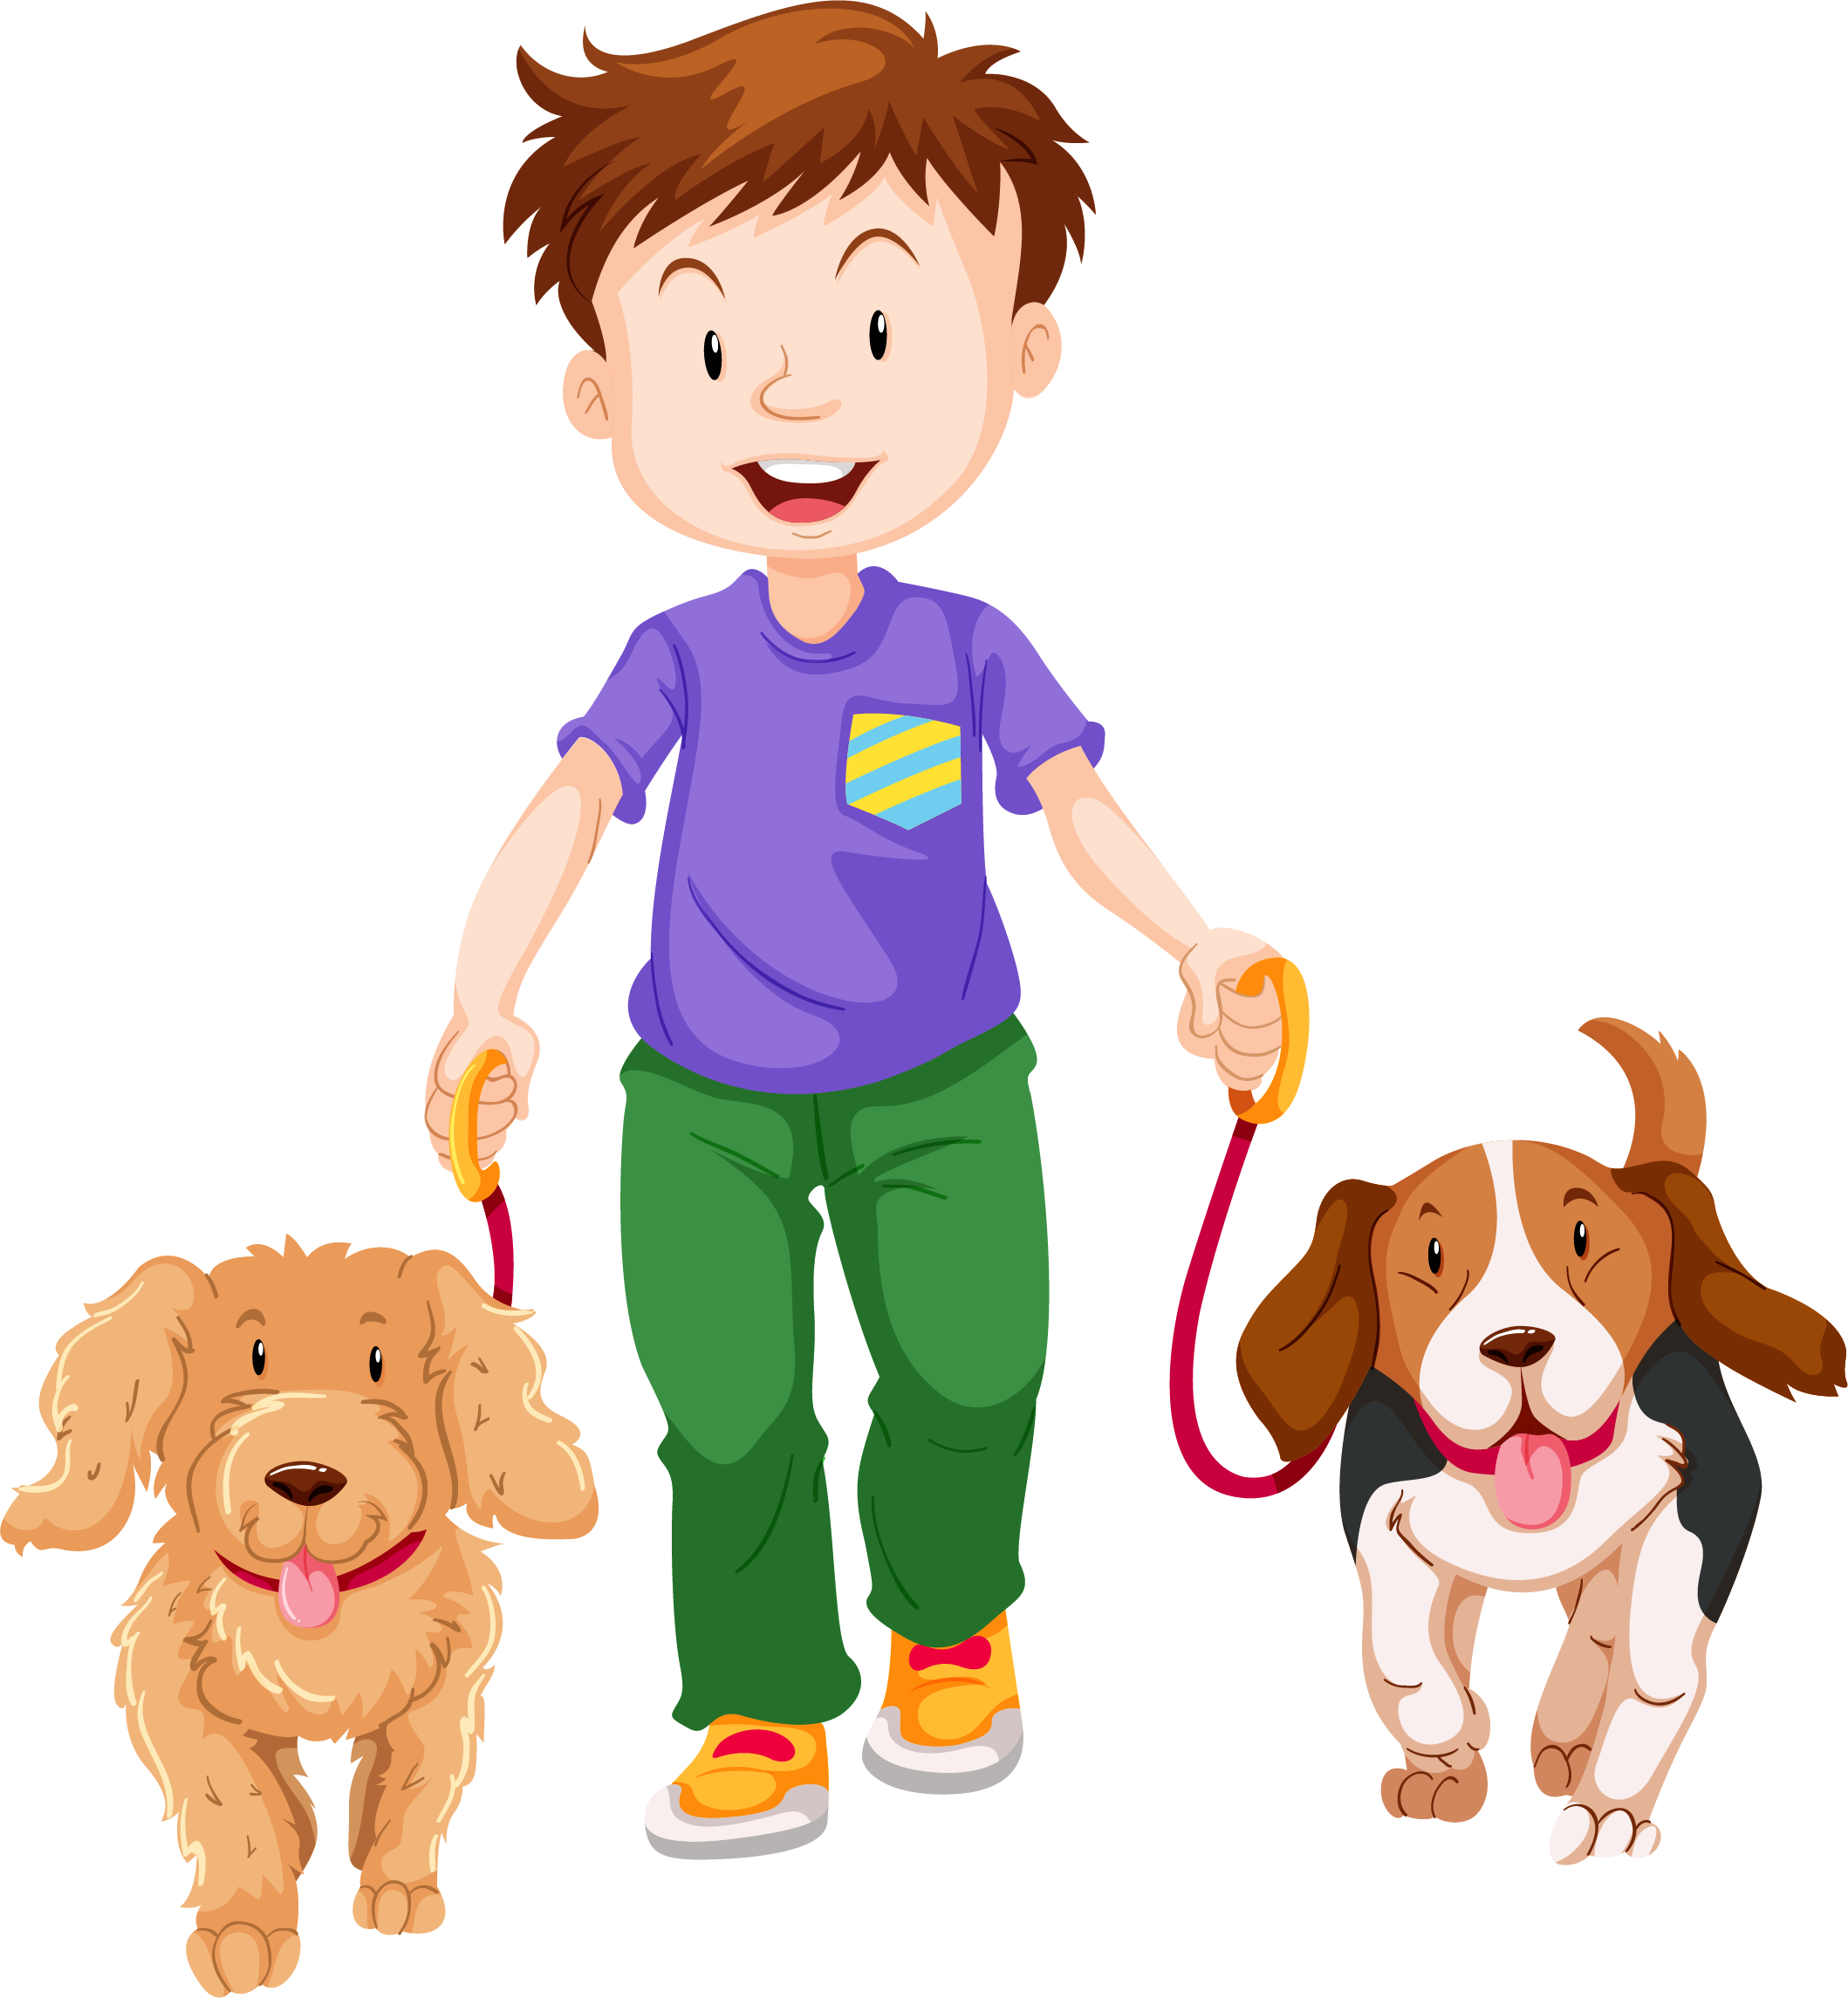 Boy walking dog clipart clipart free stock Walking Boy Cartoon - Alpha Beta Demo clipart free stock